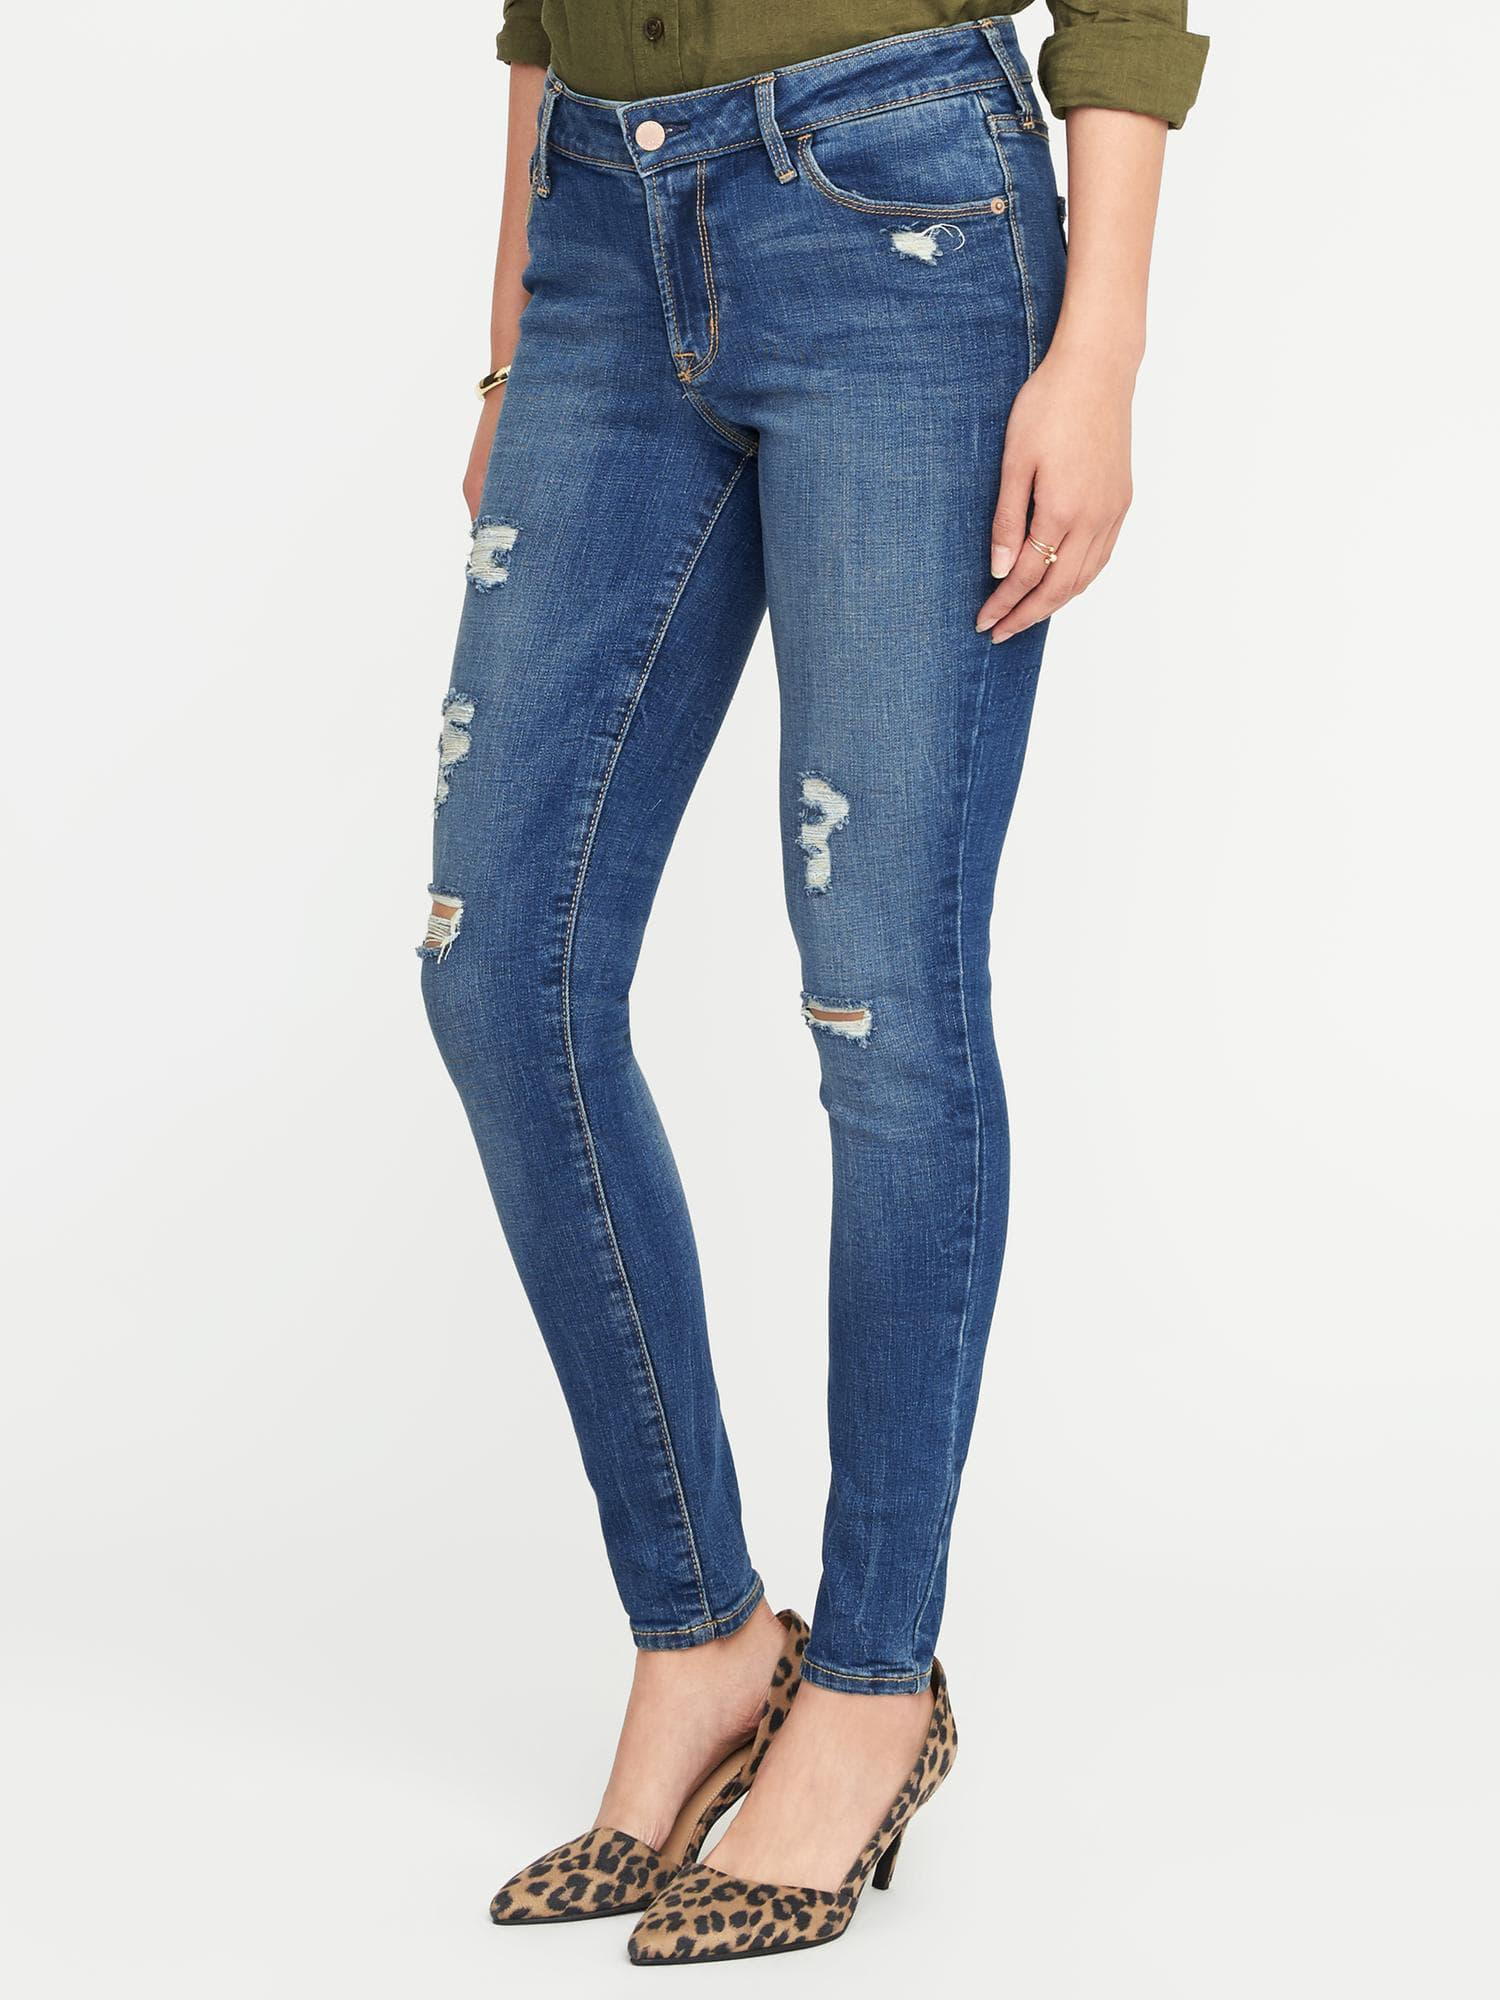 4768f883acc Lyst - Old Navy Mid-rise Distressed Rockstar Super Skinny Jeans in Blue